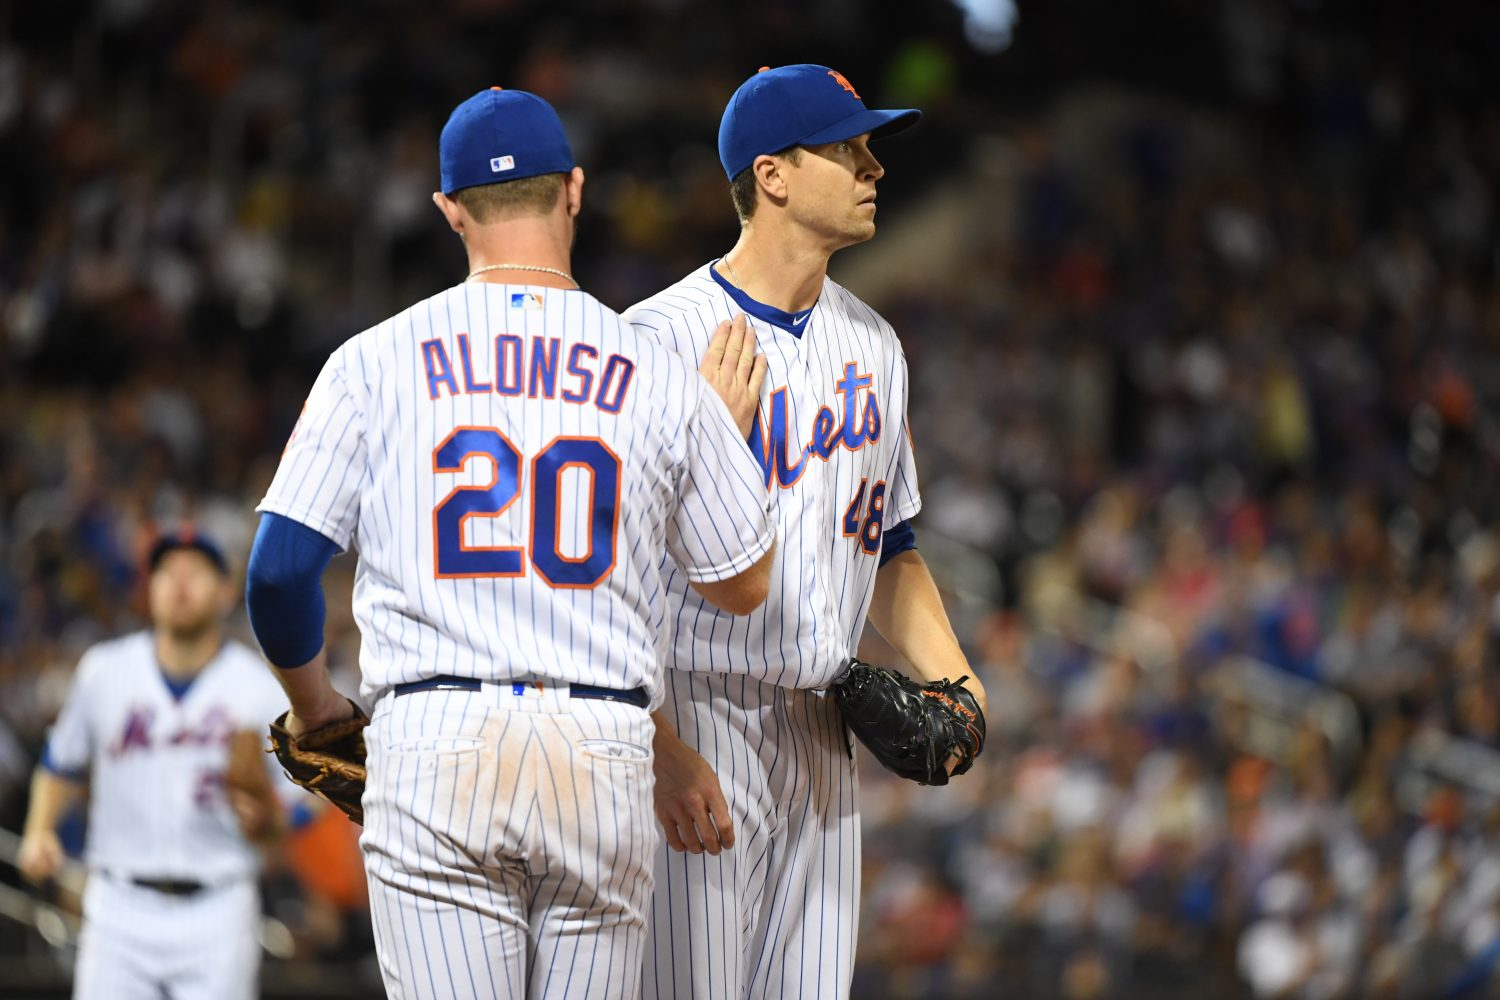 Jacob deGrom and Pete Alonso On the Field